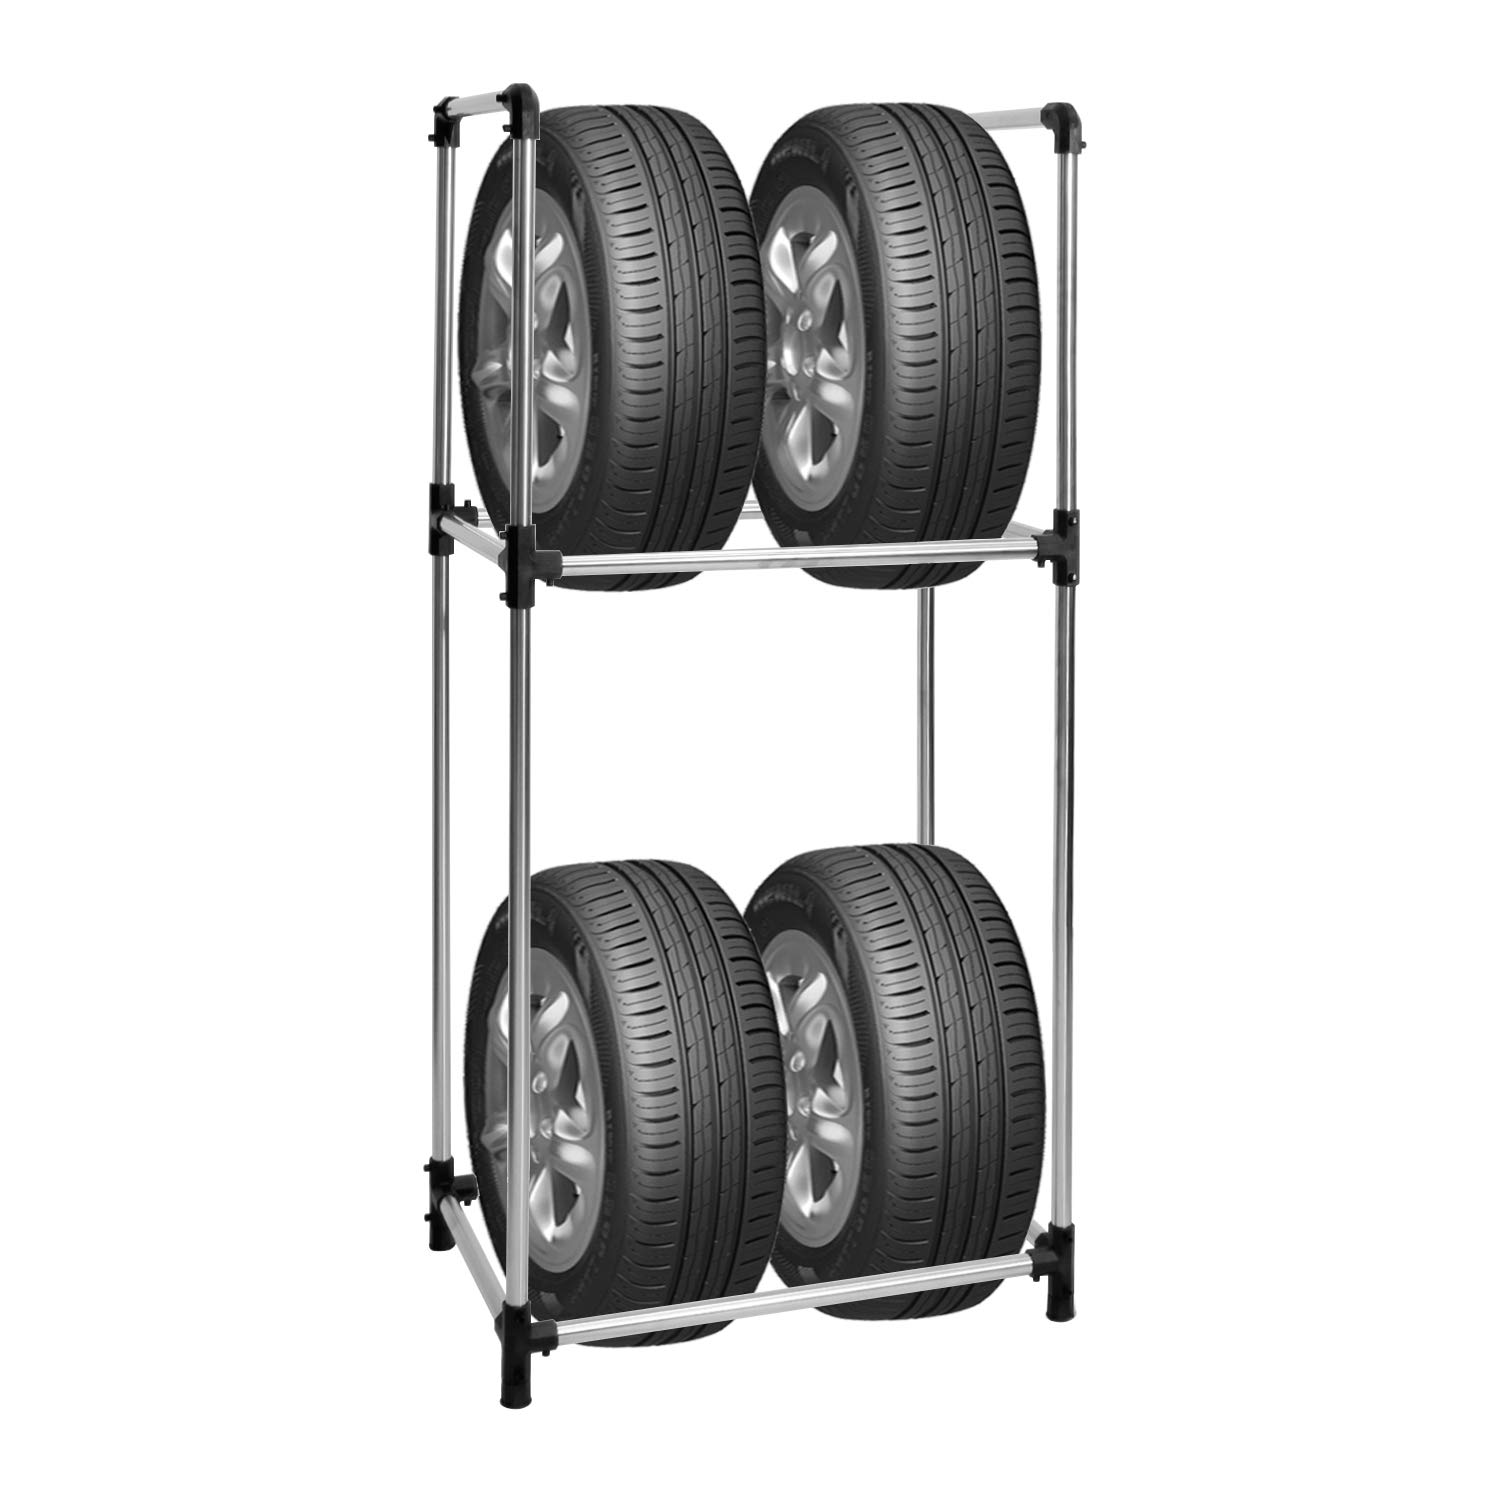 soges 2 Tiers Tire Rack Standing Tire Holder for